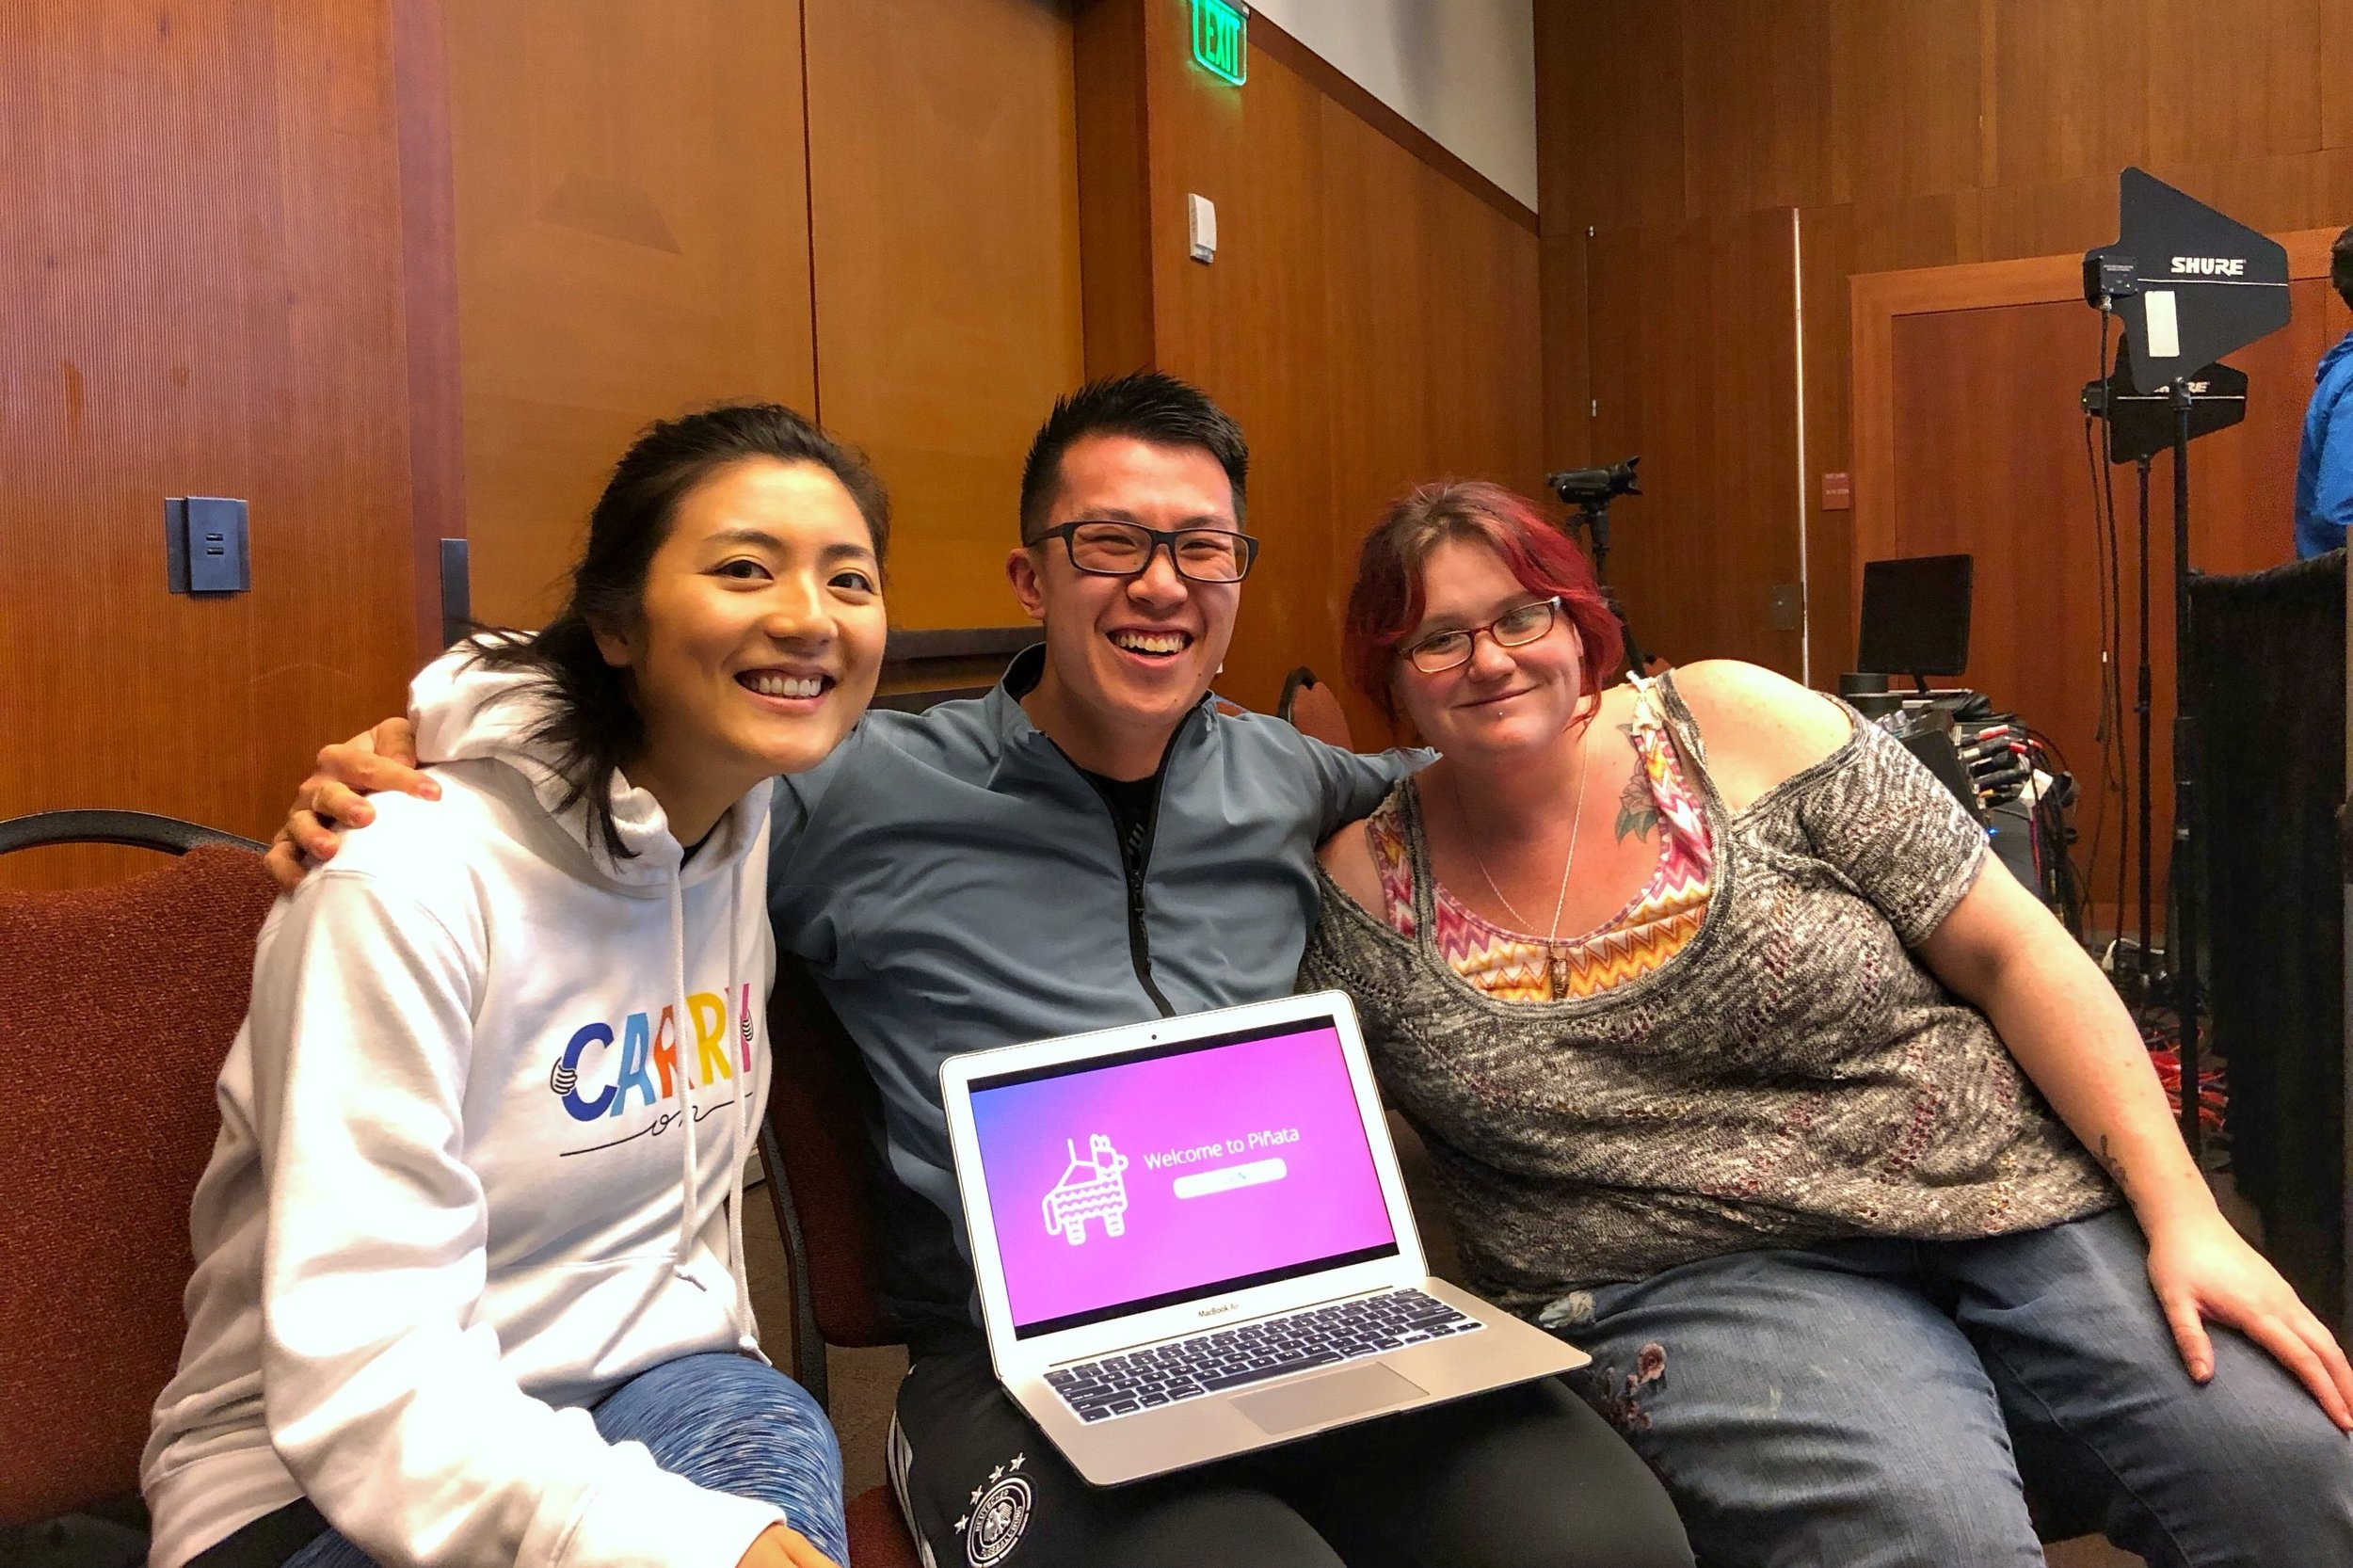 By a stroke of pure serendipity, it was our first meeting at the Hack Mental Health Hackathon — and our first hackathons ever!